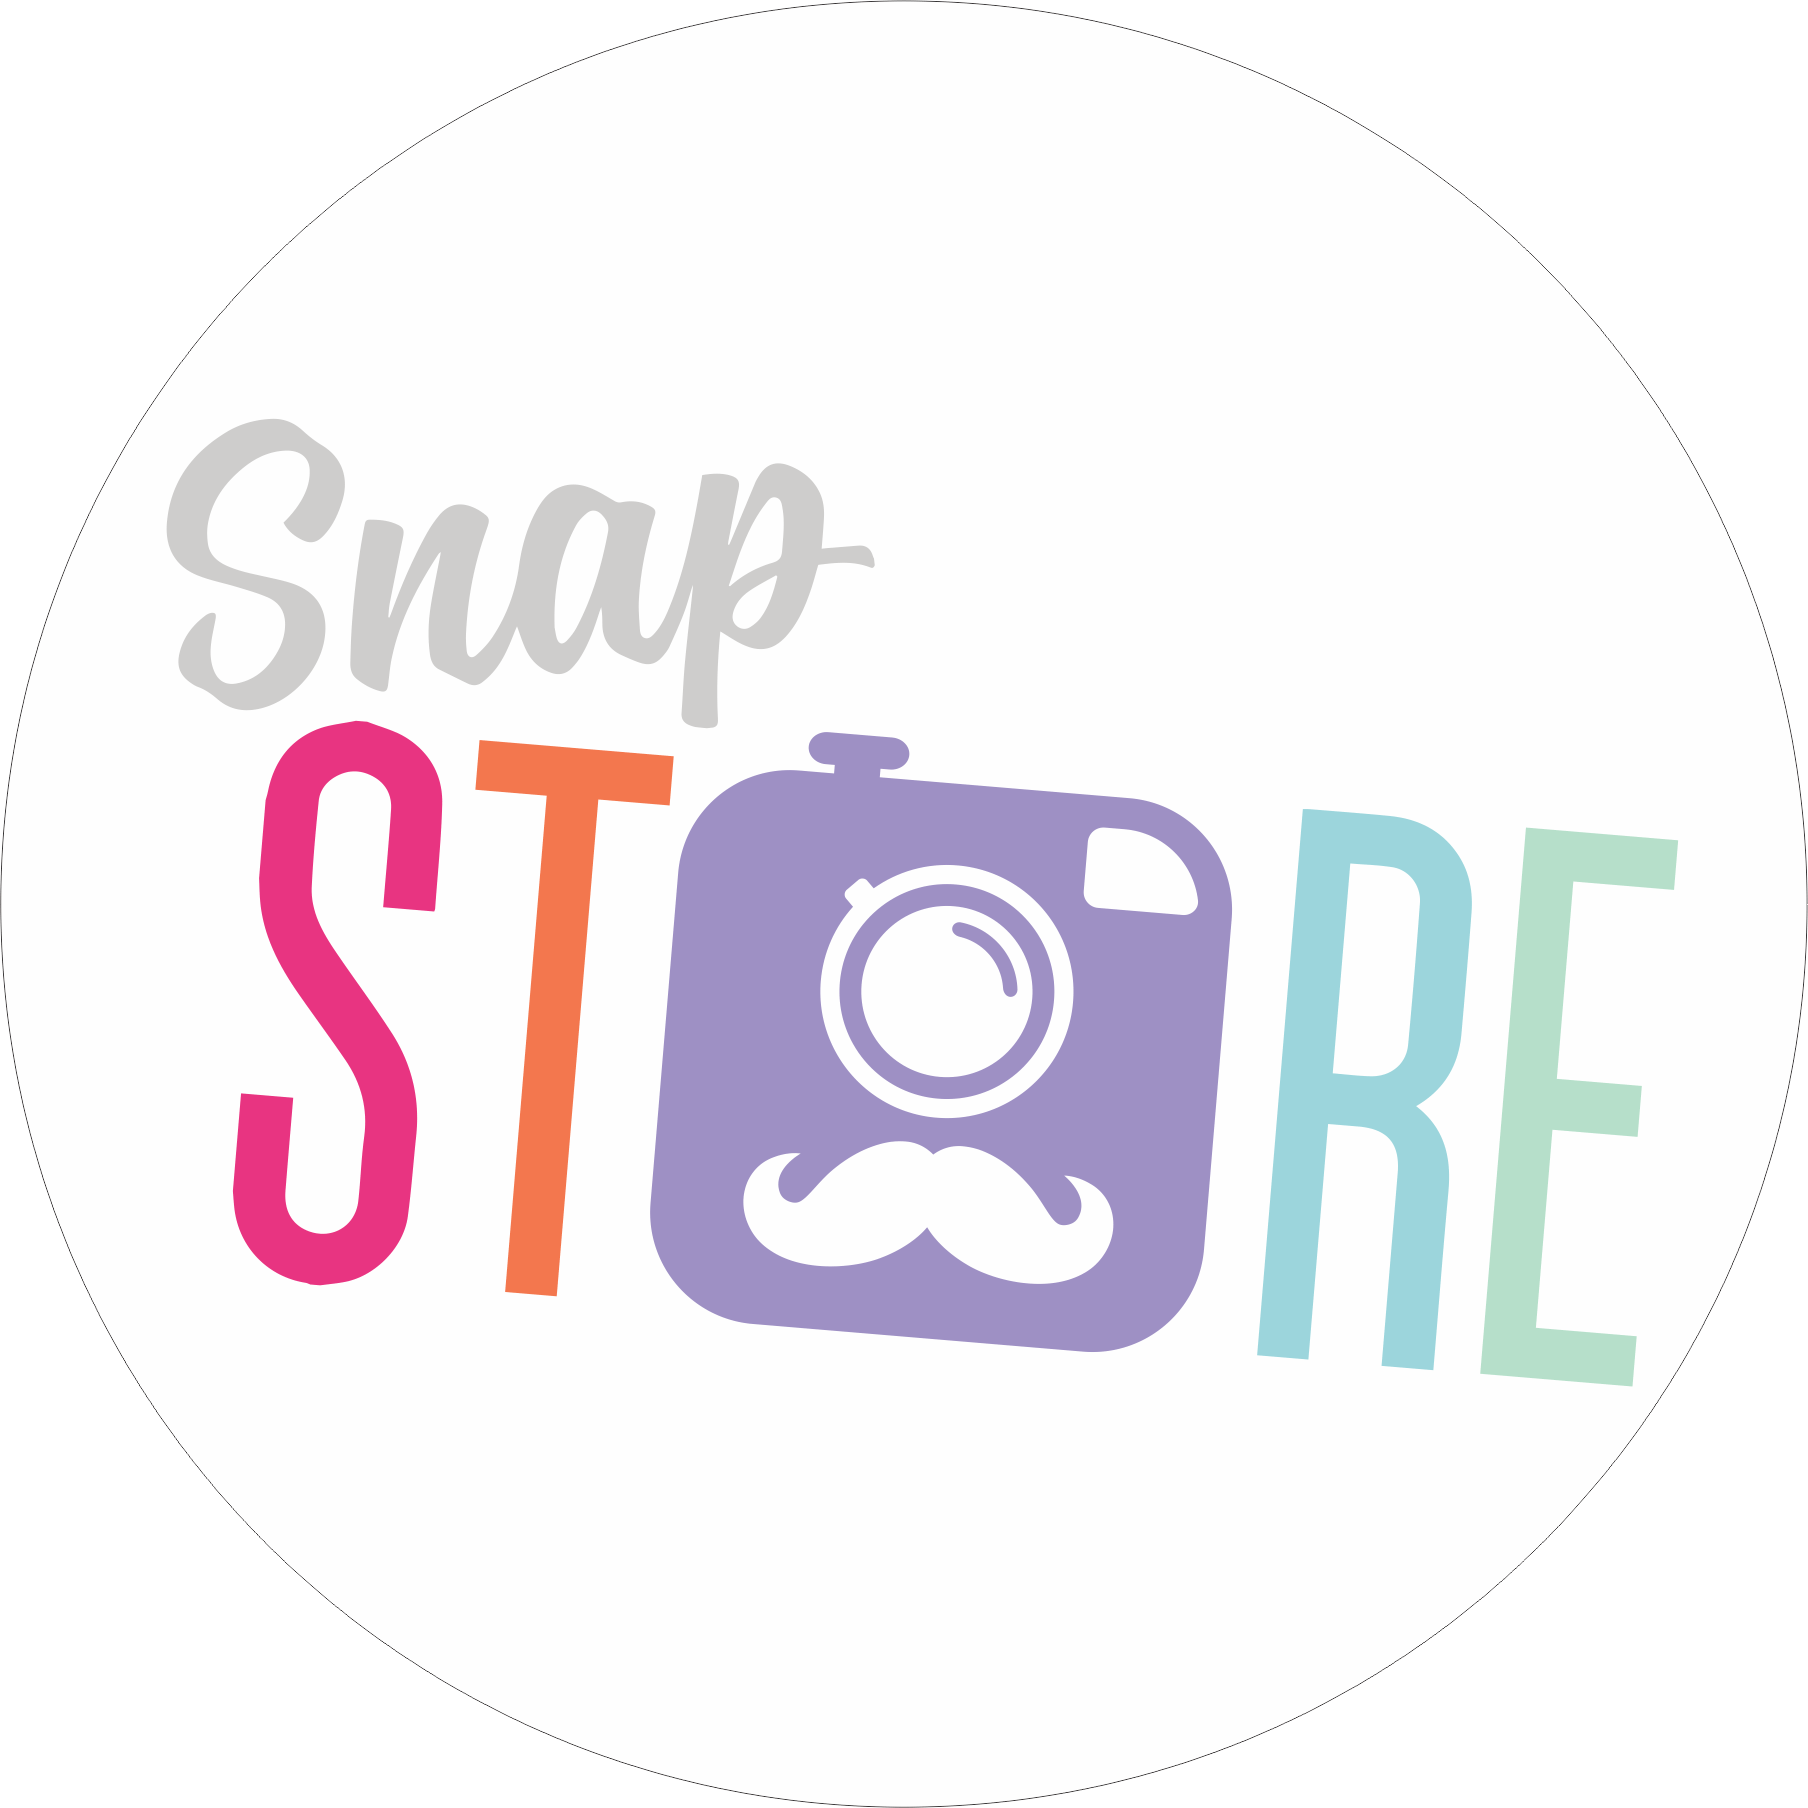 The Snap Store App logo